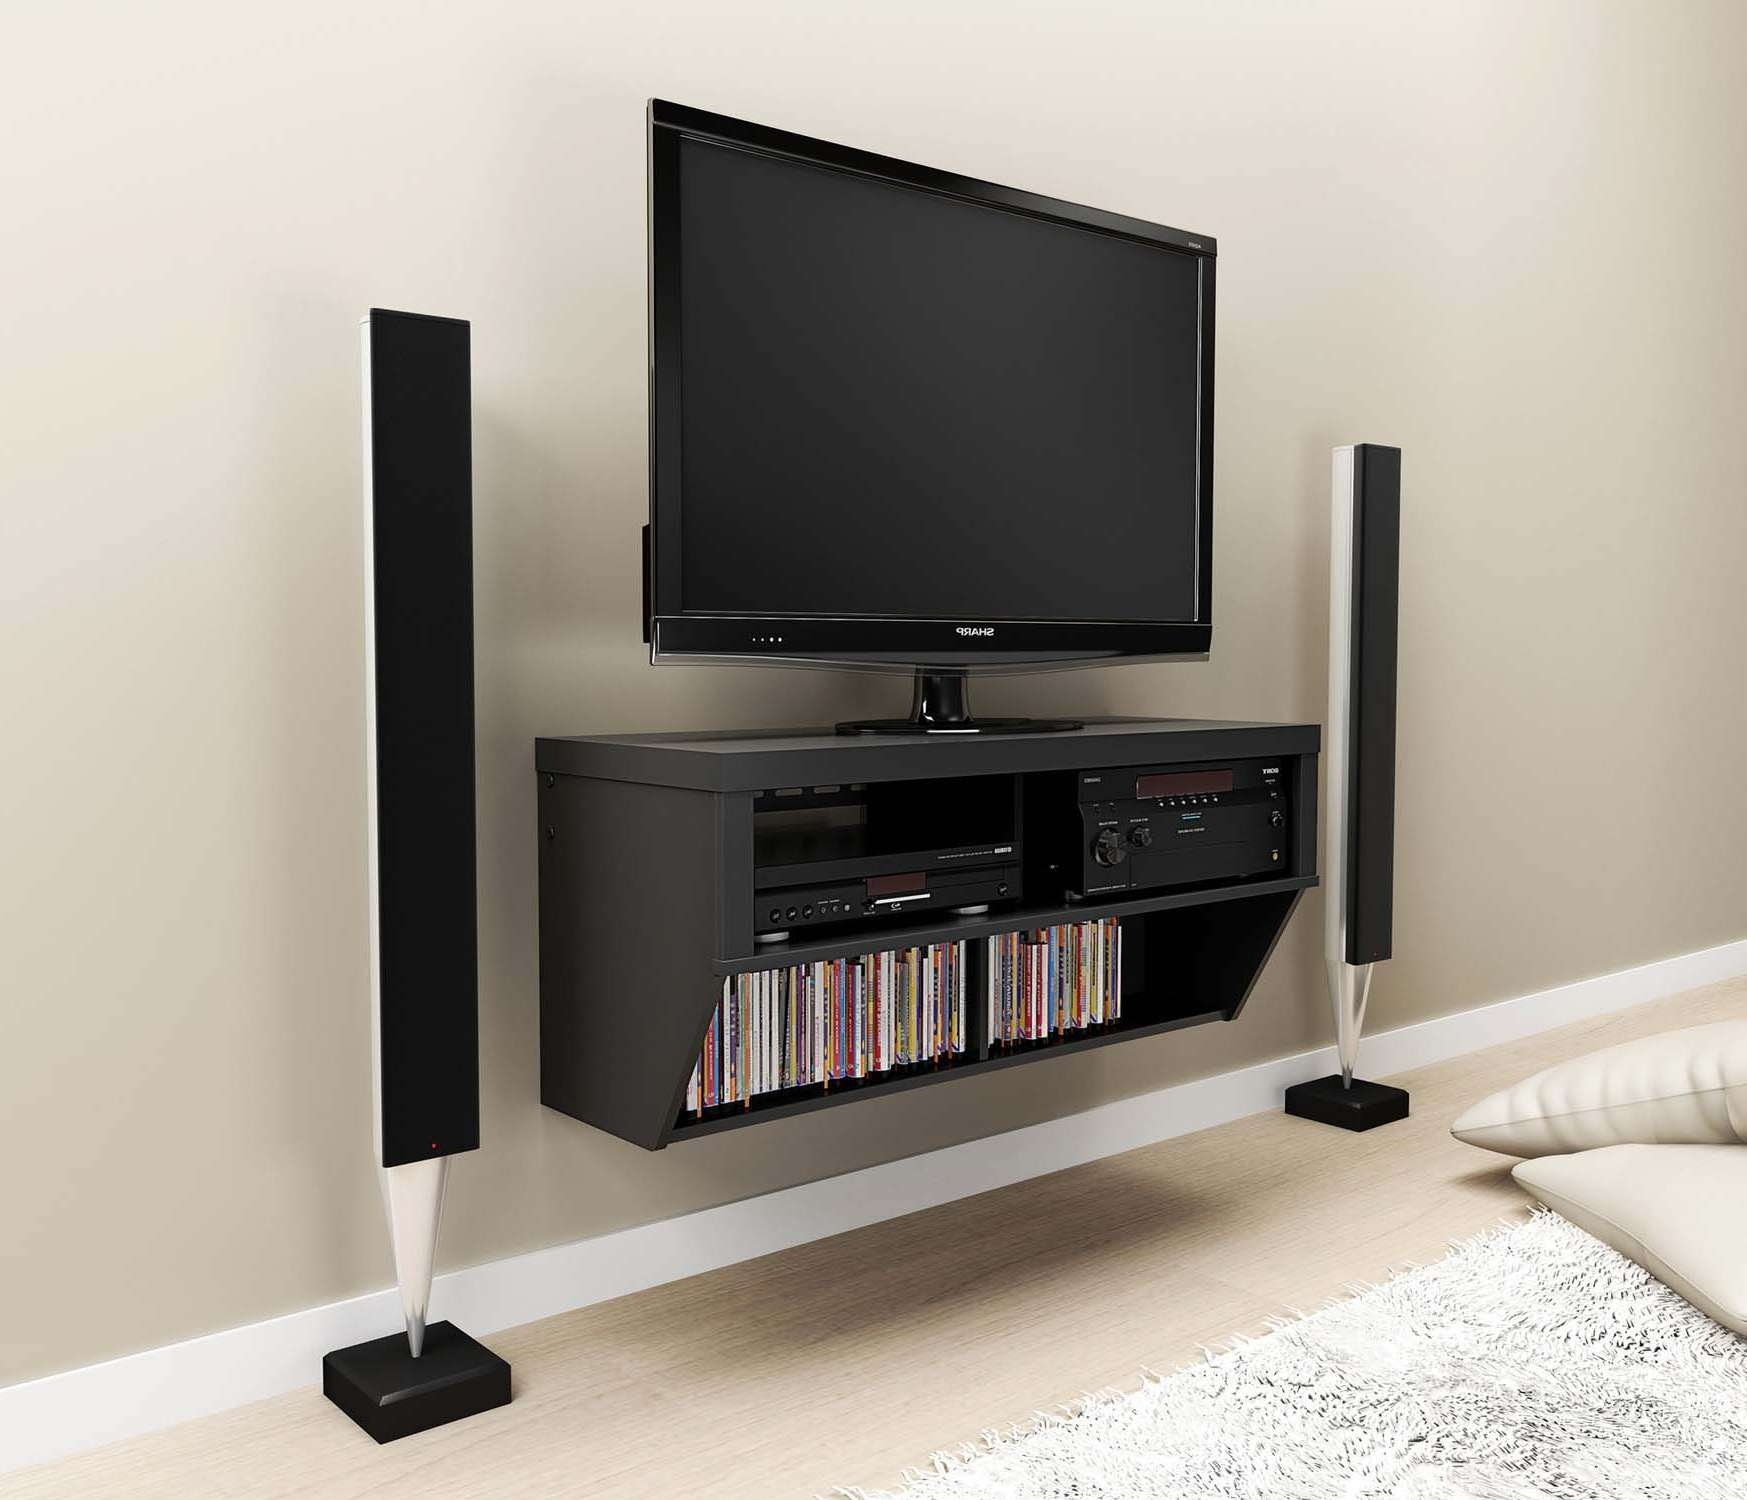 Black Stained Oak Wall Mounted Media Shelf And Tv Stand Of Trendy Inside White Wall Mounted Tv Stands (View 1 of 15)